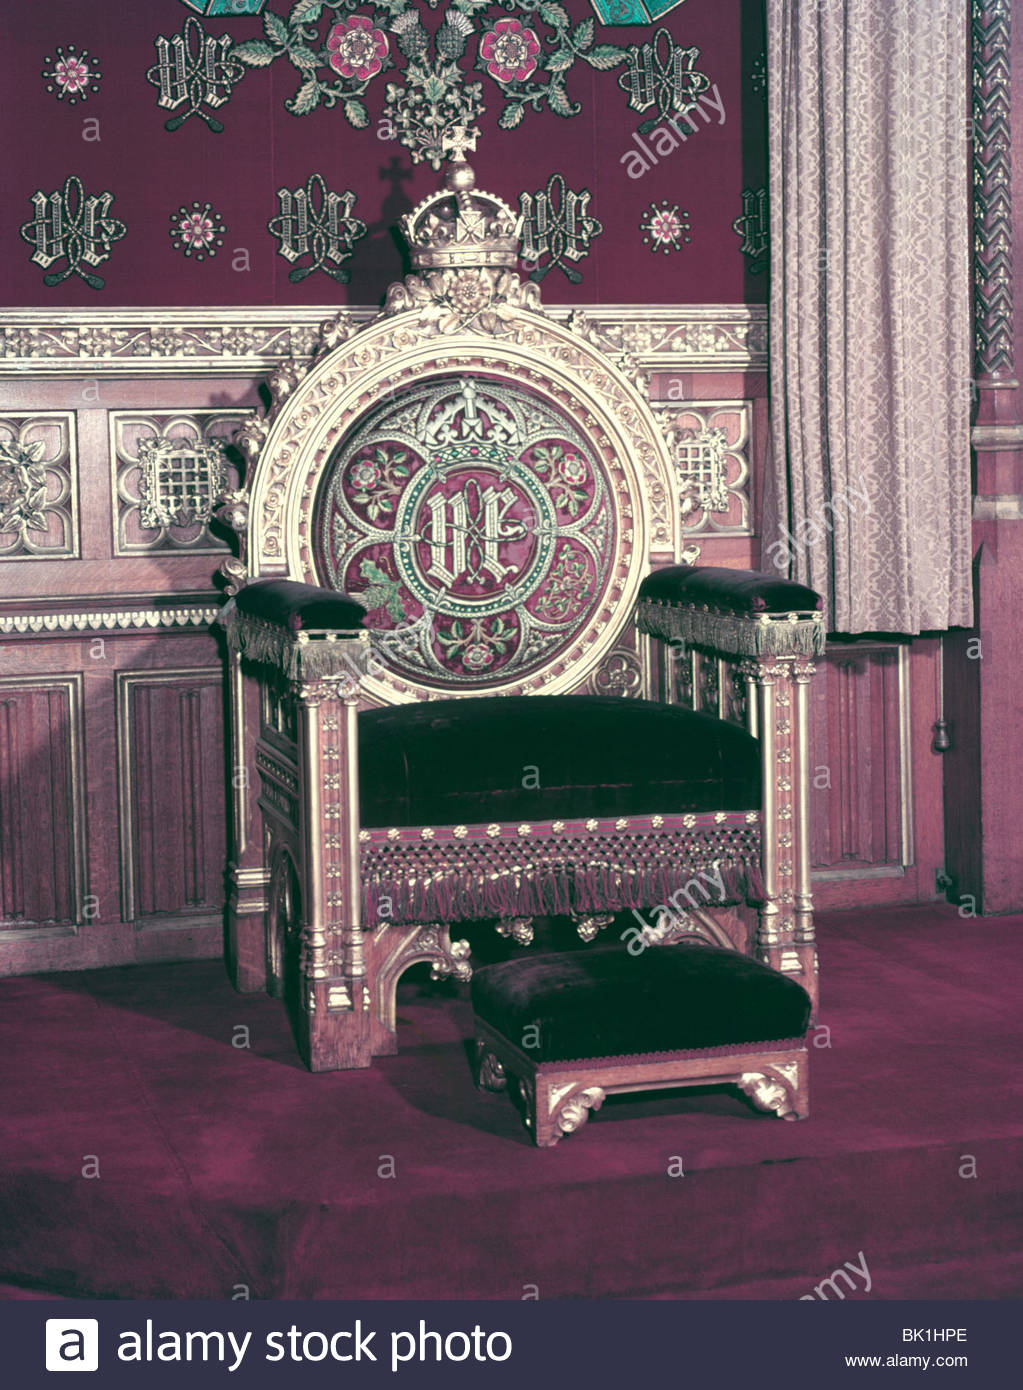 http://c8.alamy.com/comp/BK1HPE/the-throne-chair-used-by-queen-elizabeth-ii-at-the-palace-of-westminster-BK1HPE.jpg